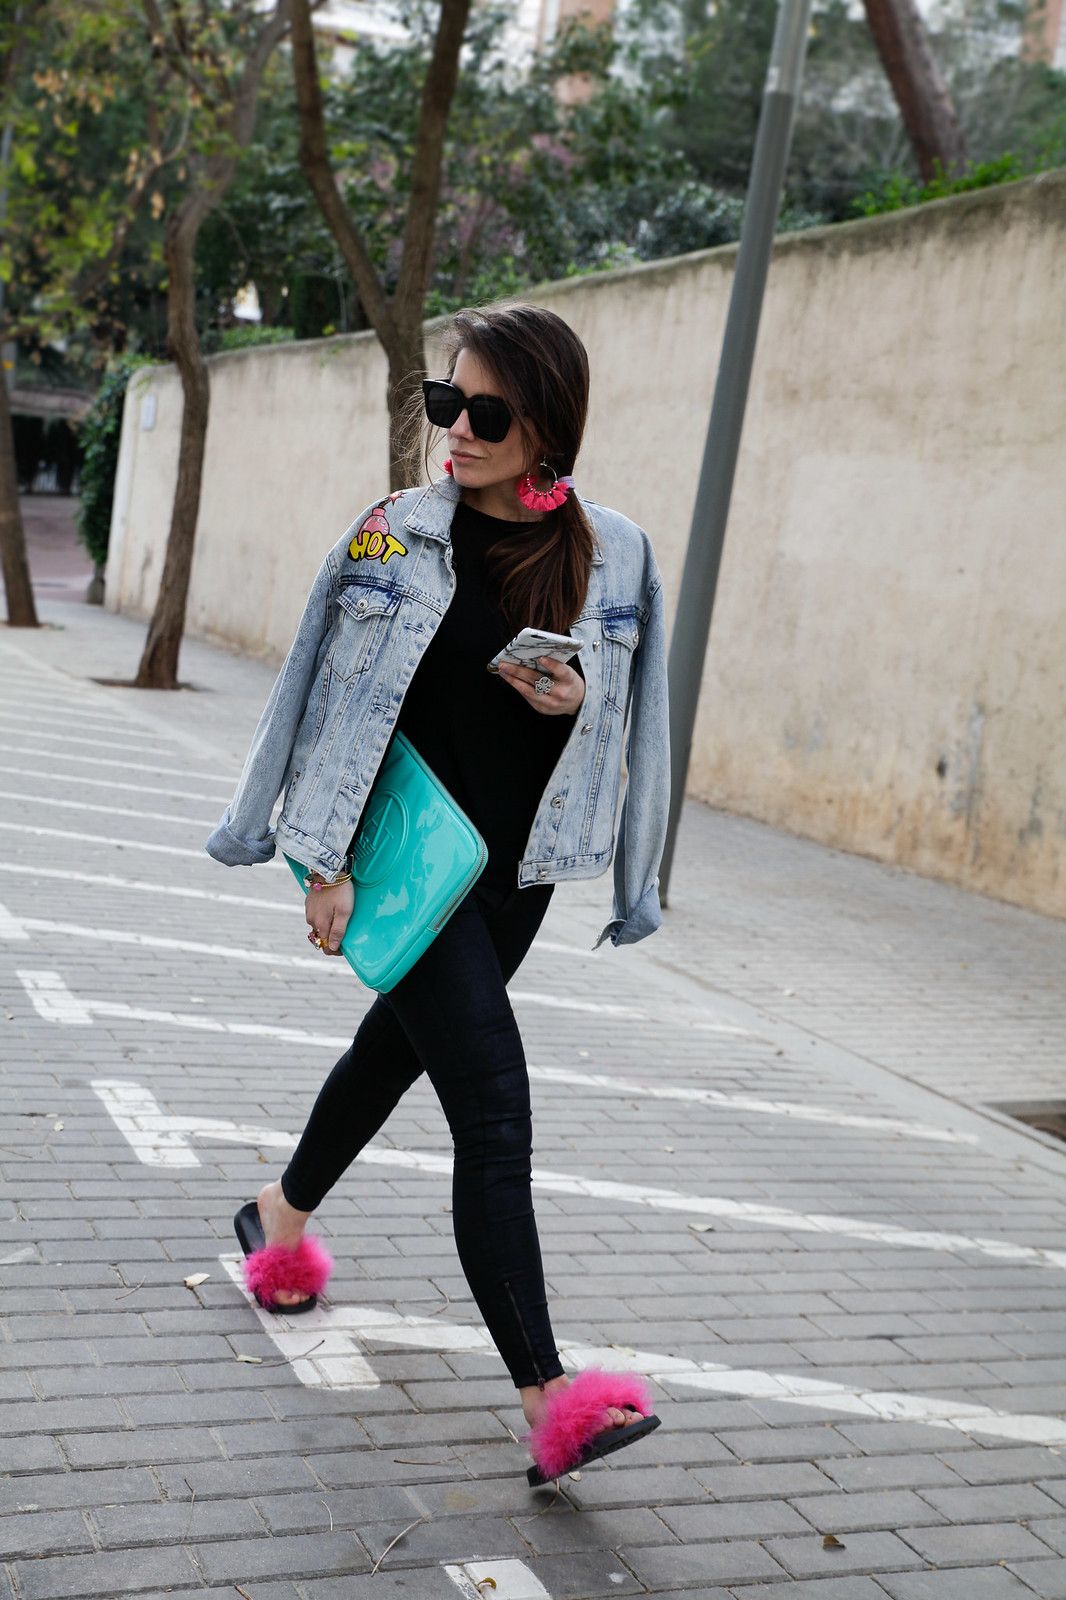 01_black_look_with_pink_fluffy_sandals_theguestgirl_laura_santolaria_noholita_dulceida_collagevintahe_sincerlyjules